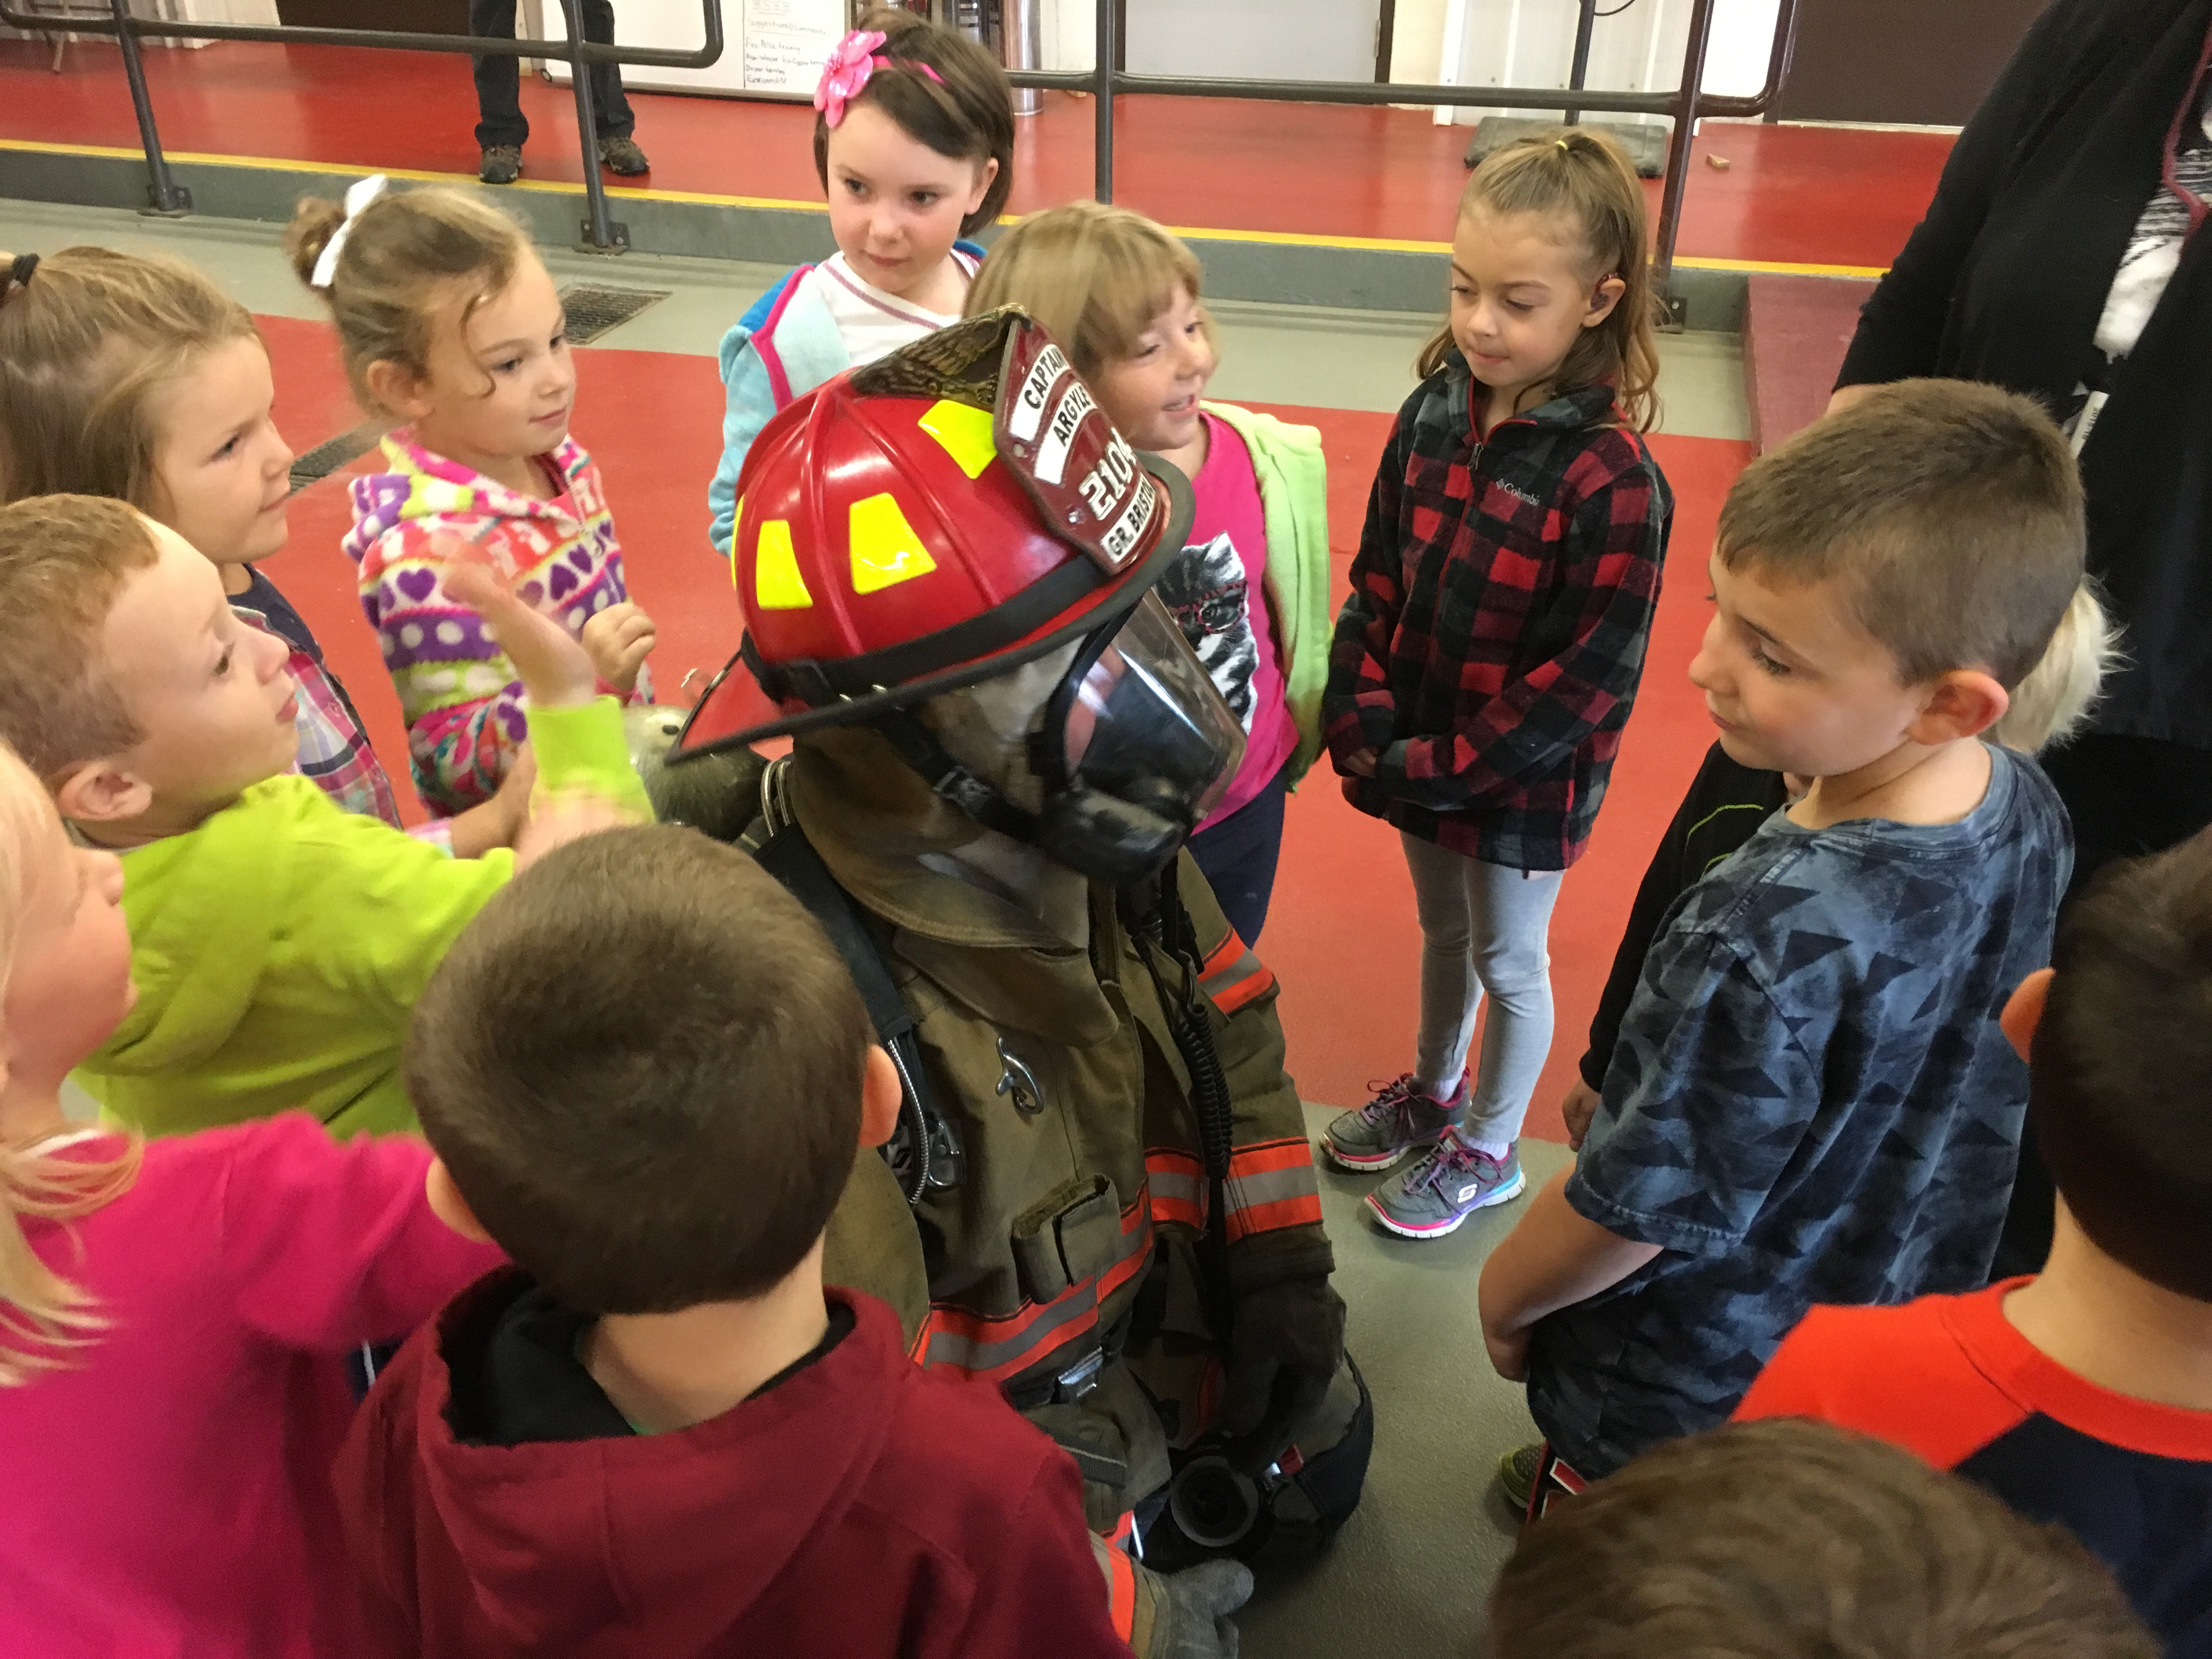 Students see Chief Bristol in his gear